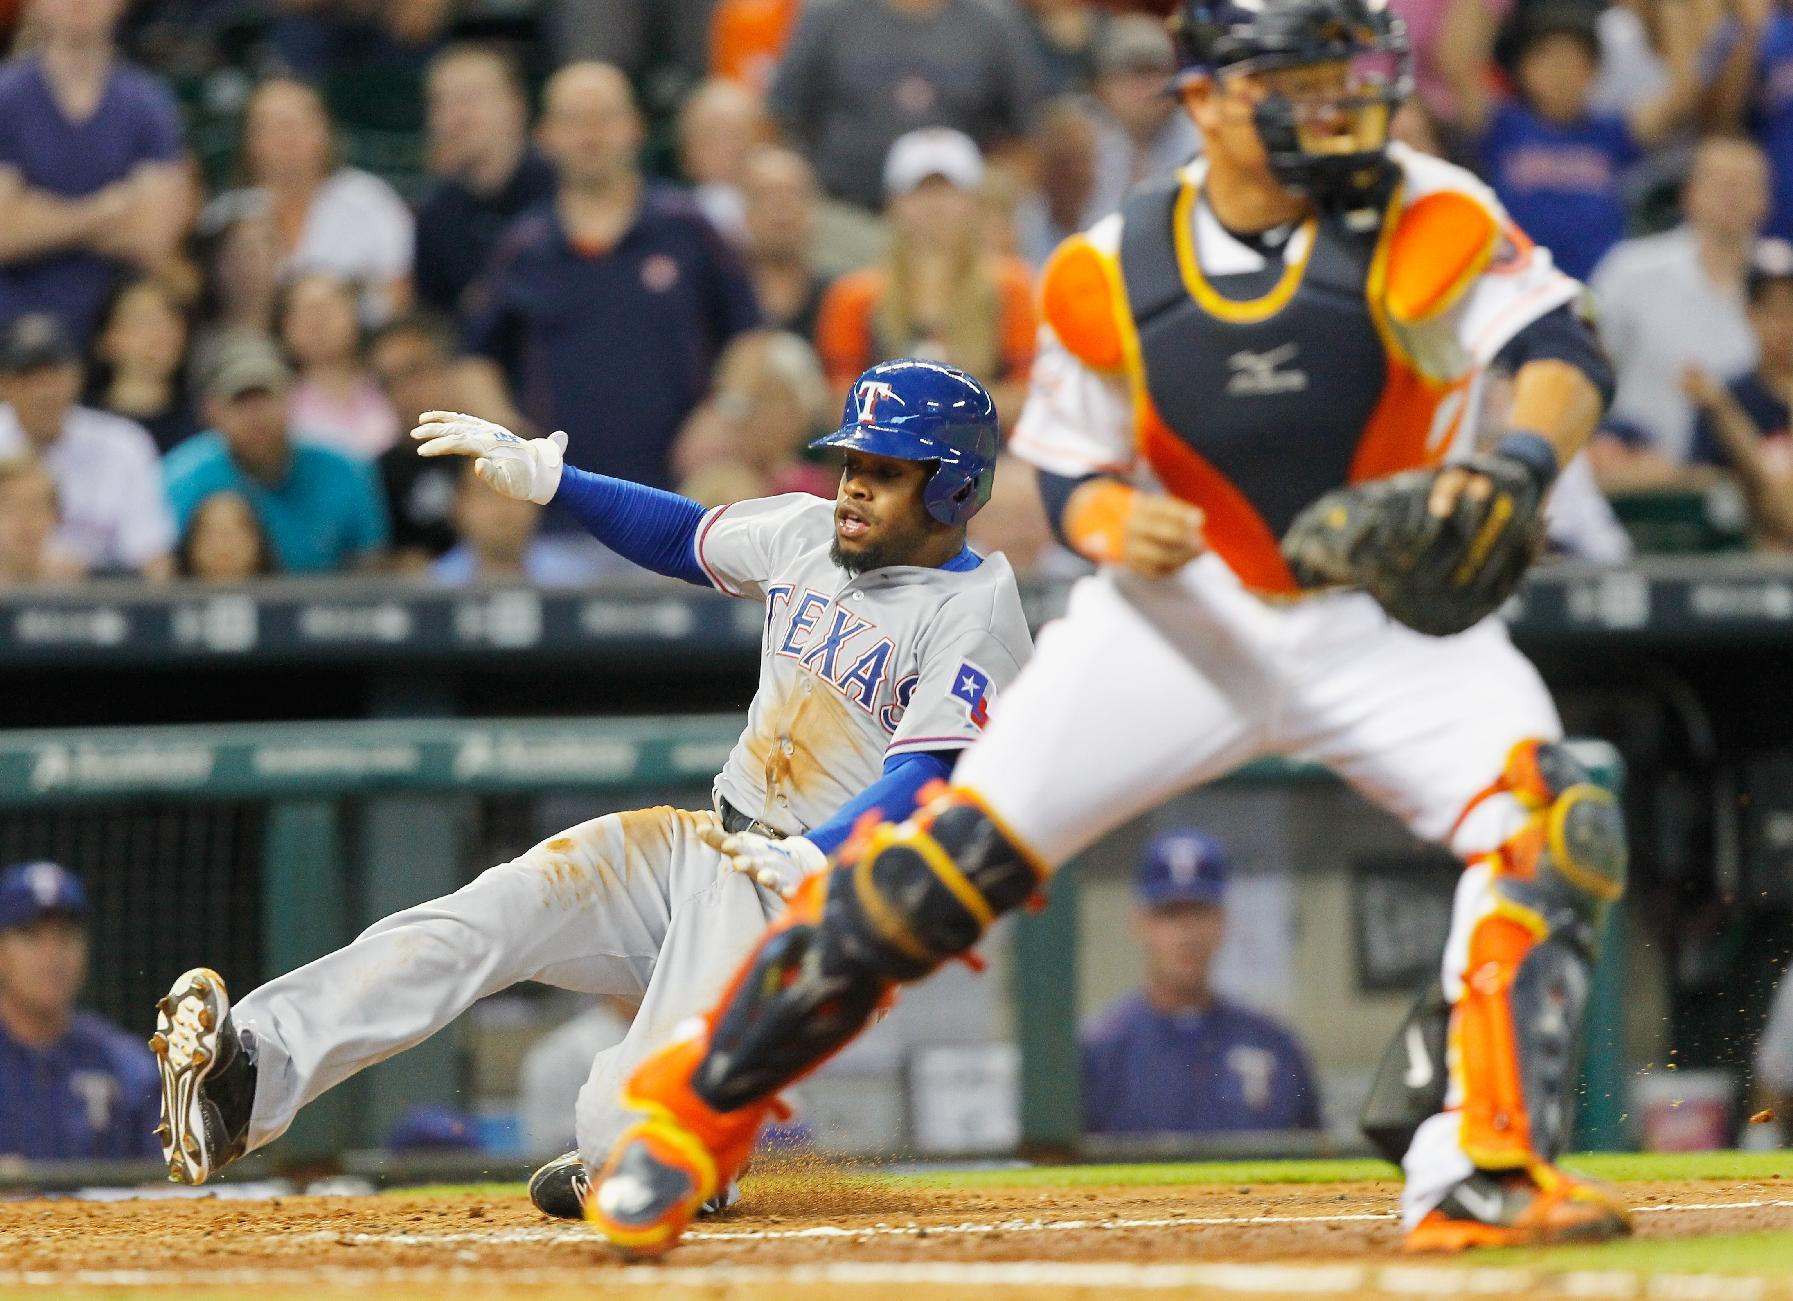 The dream is over: Astros' 10-game winning streak snapped by Rangers